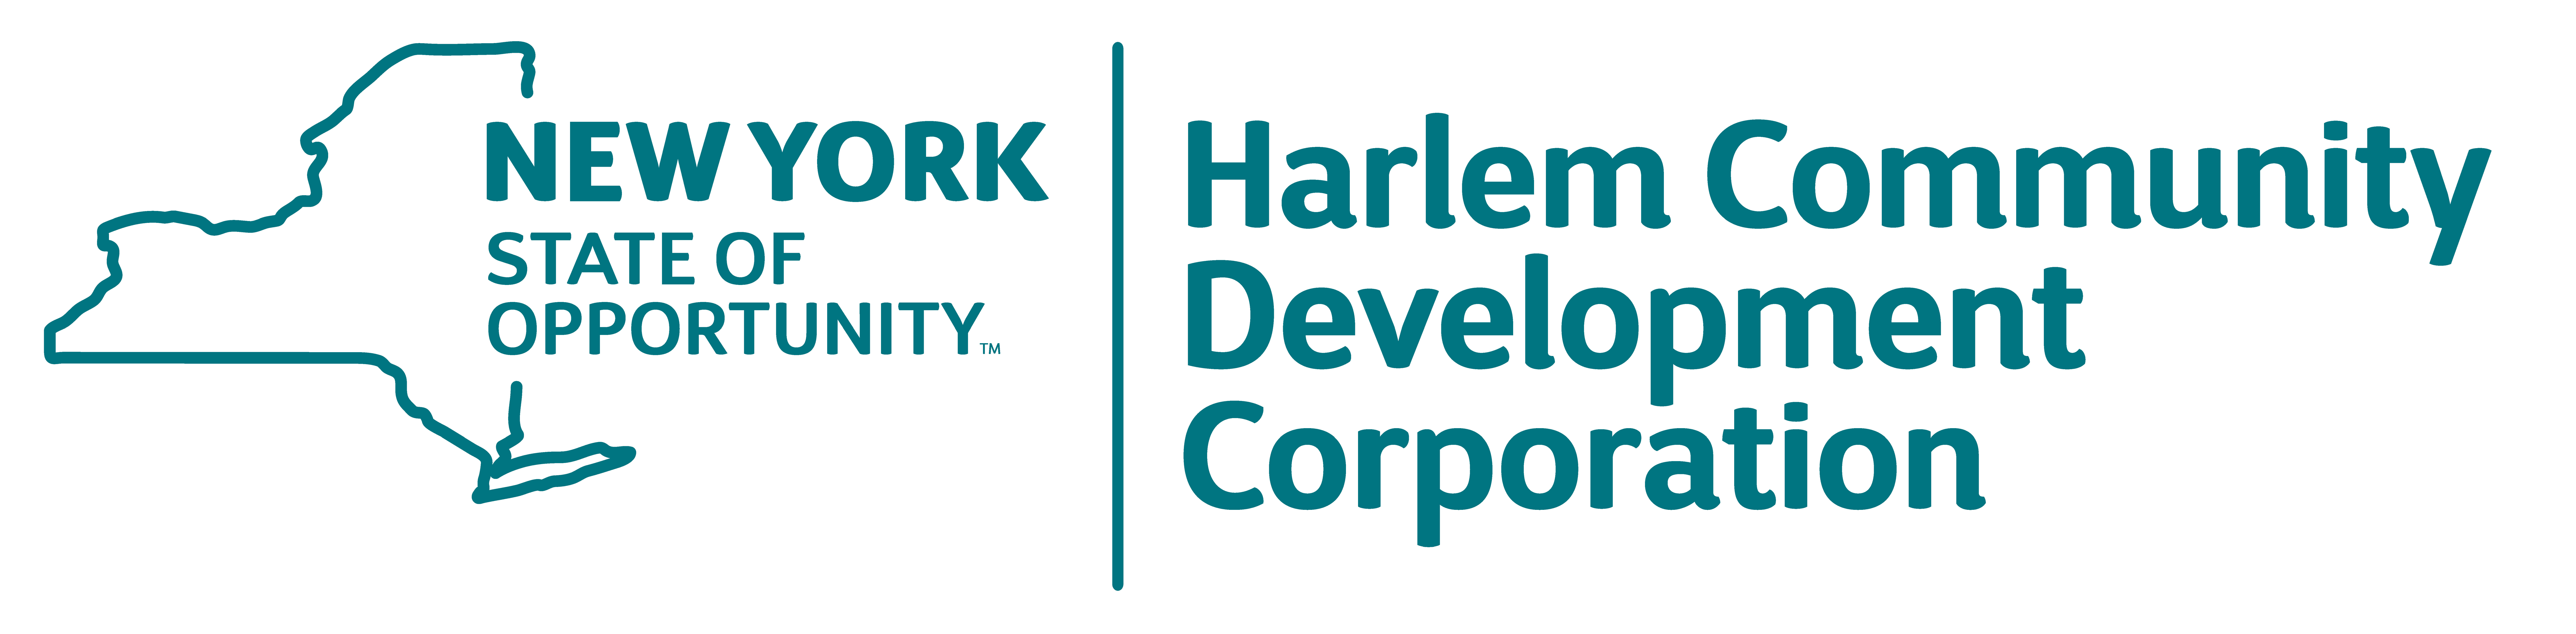 harlem-community-development-corporation